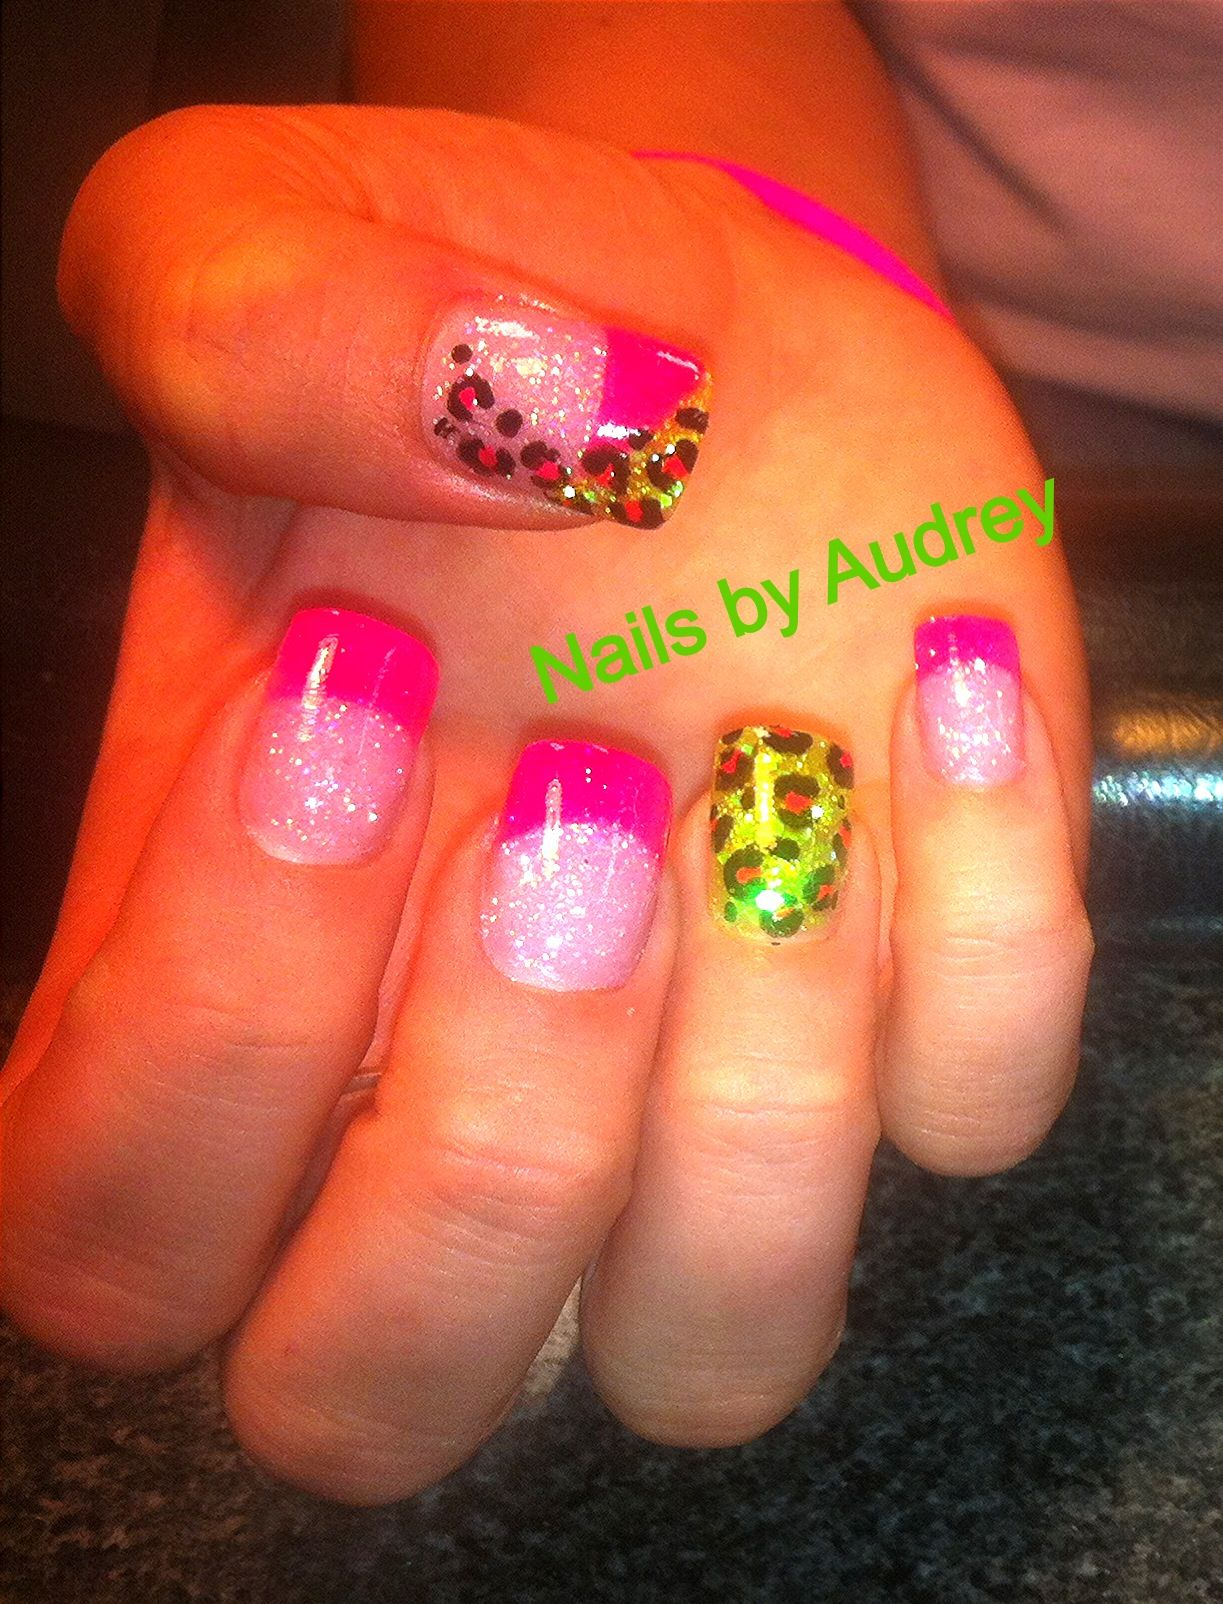 Hot pink lime green nails nails by audrey pinterest hot pink lime green nails prinsesfo Choice Image